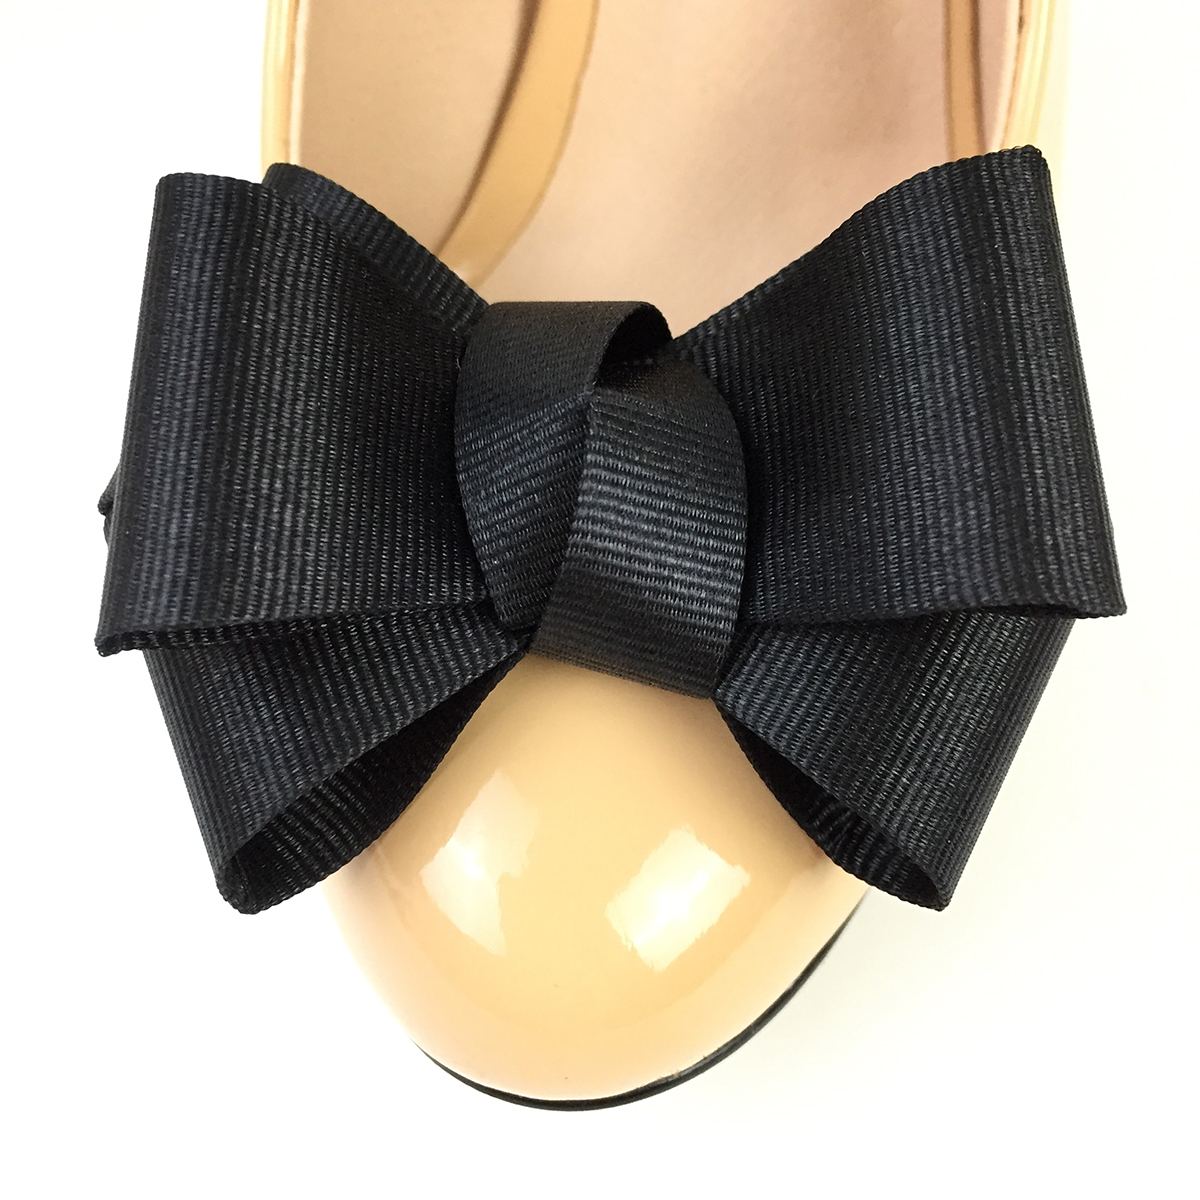 1 Pair Shoe Accessories Shoe Charms Elegant Fabric Bow For Women High Heels Shoes Bowknot Decoration Bow Black DIY Glue On